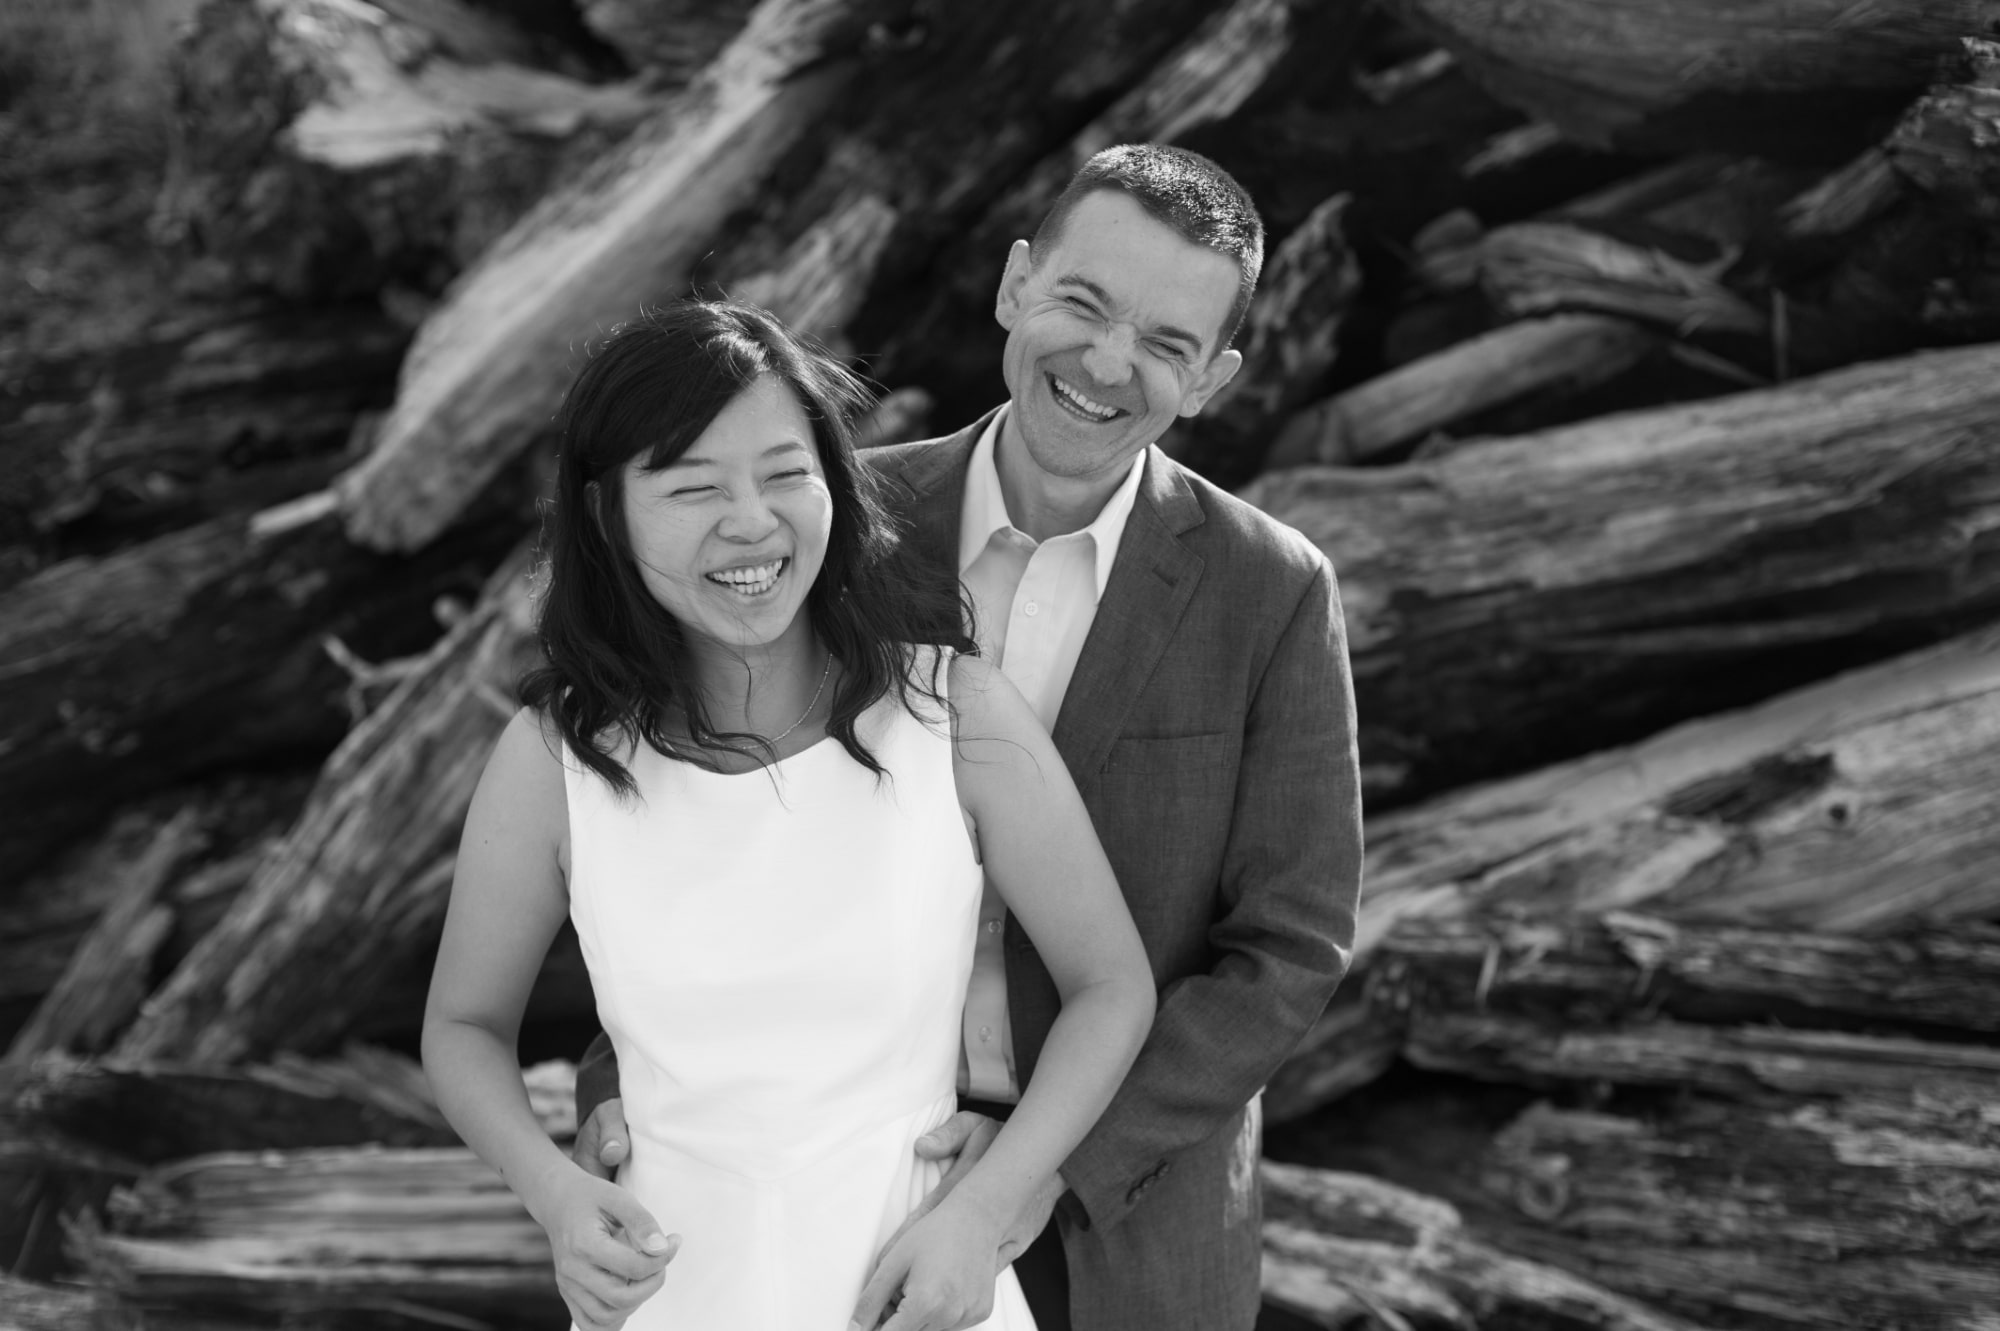 Portrait of Bride and Groom following wedding ceremony at Cannon Beach